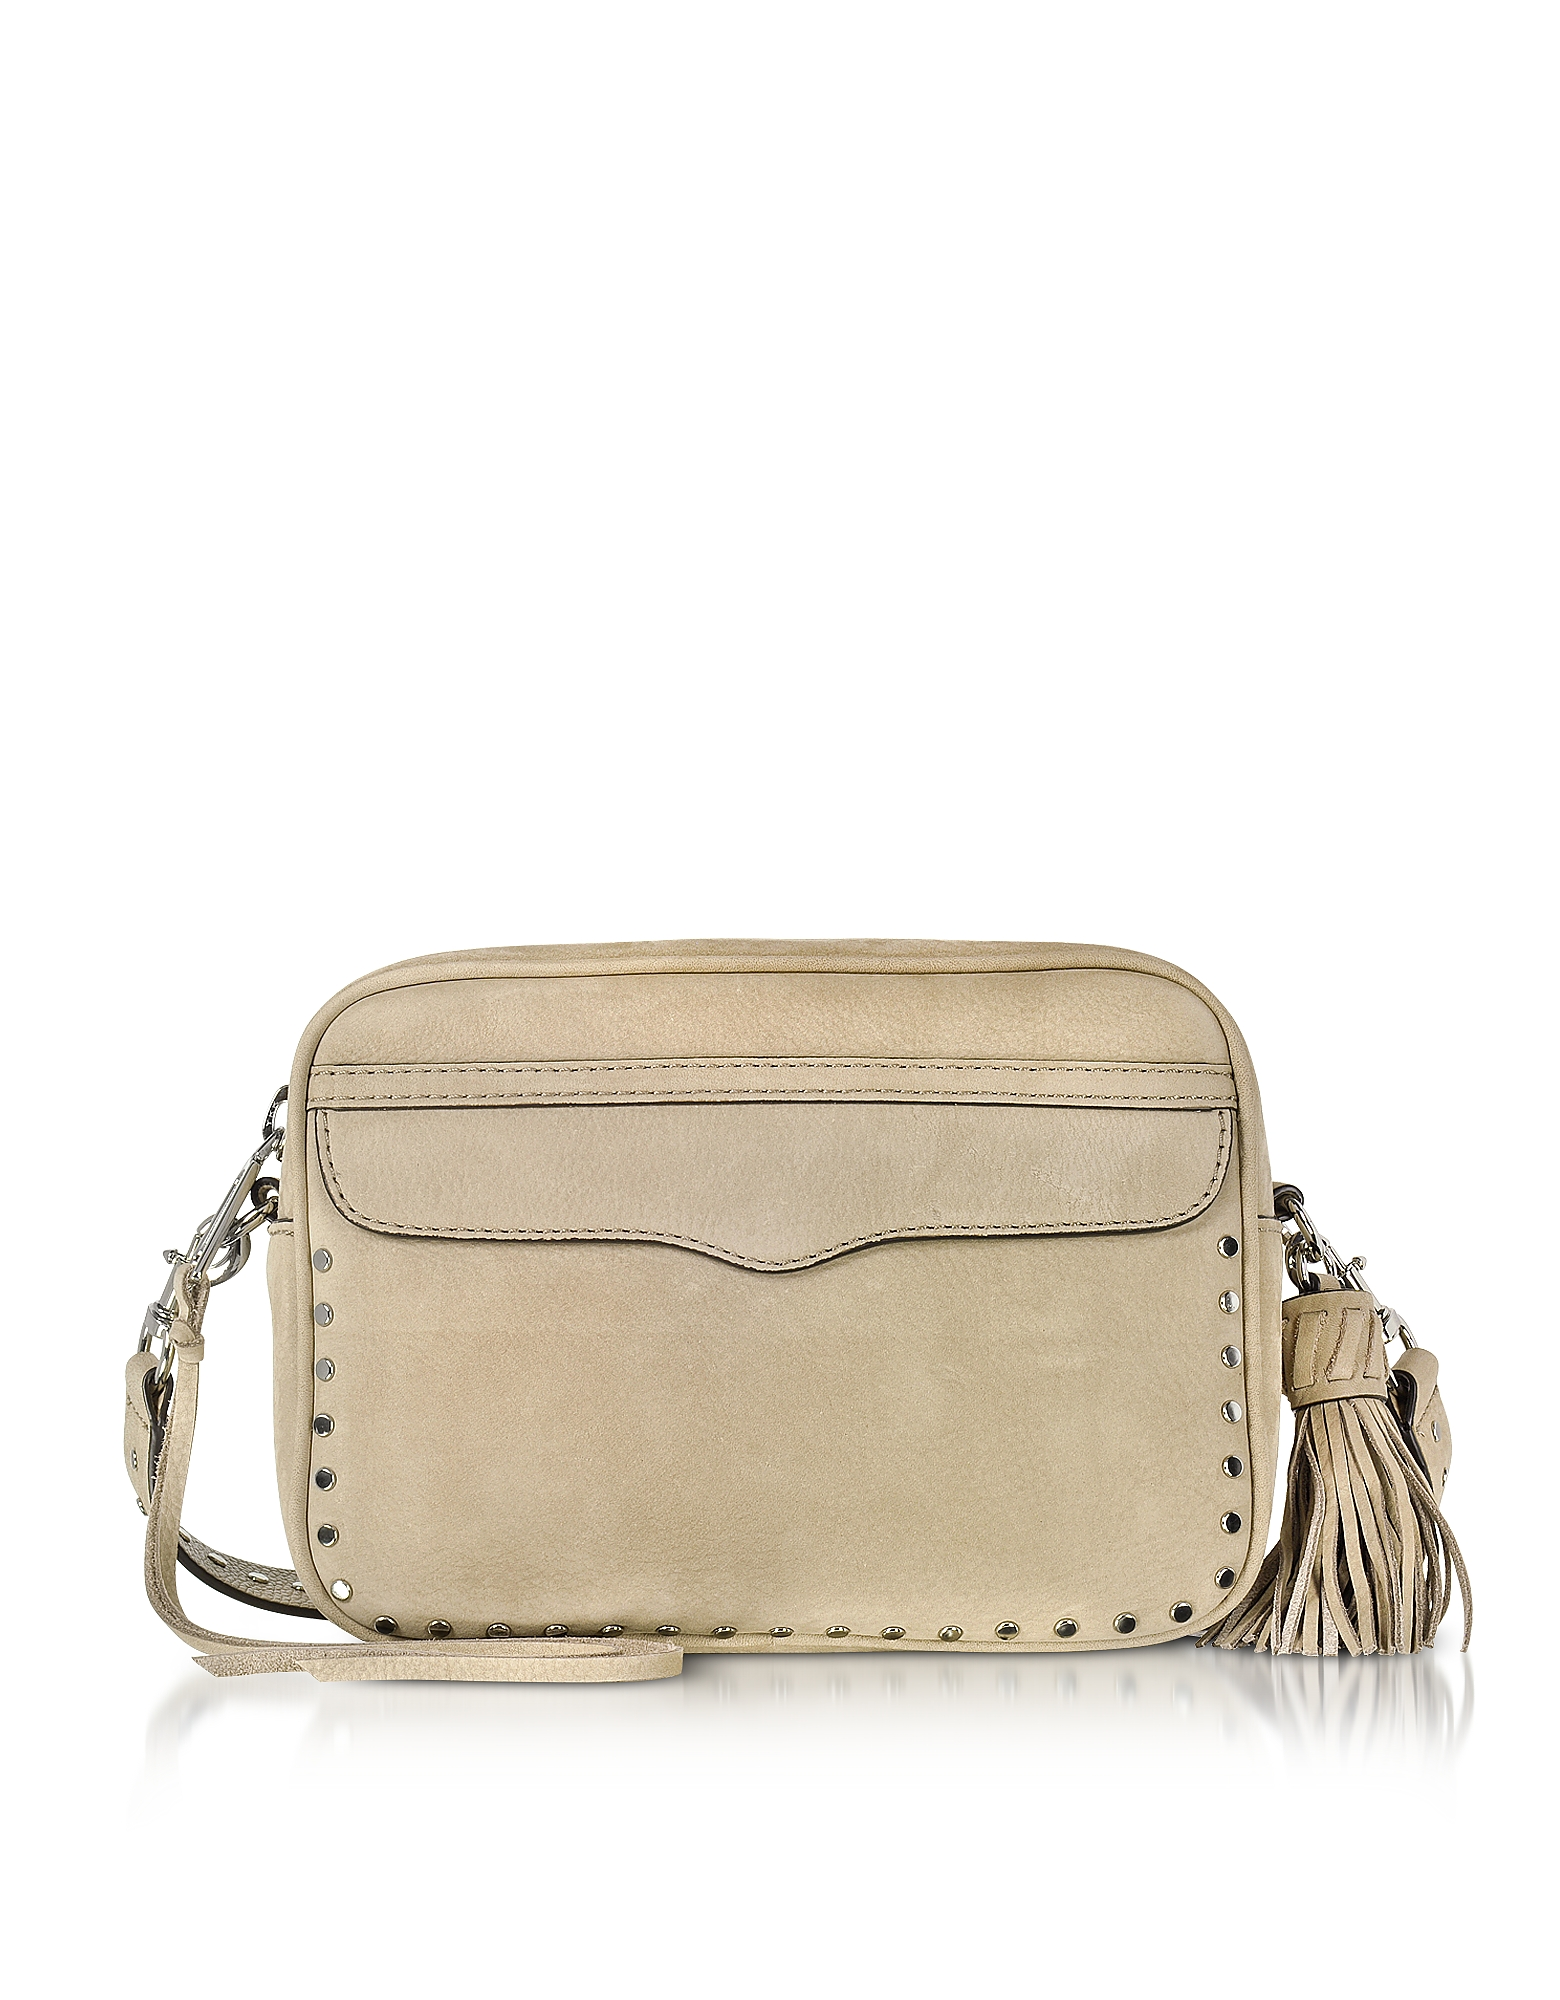 Rebecca Minkoff Sandstone Leather Bryn Camera Bag